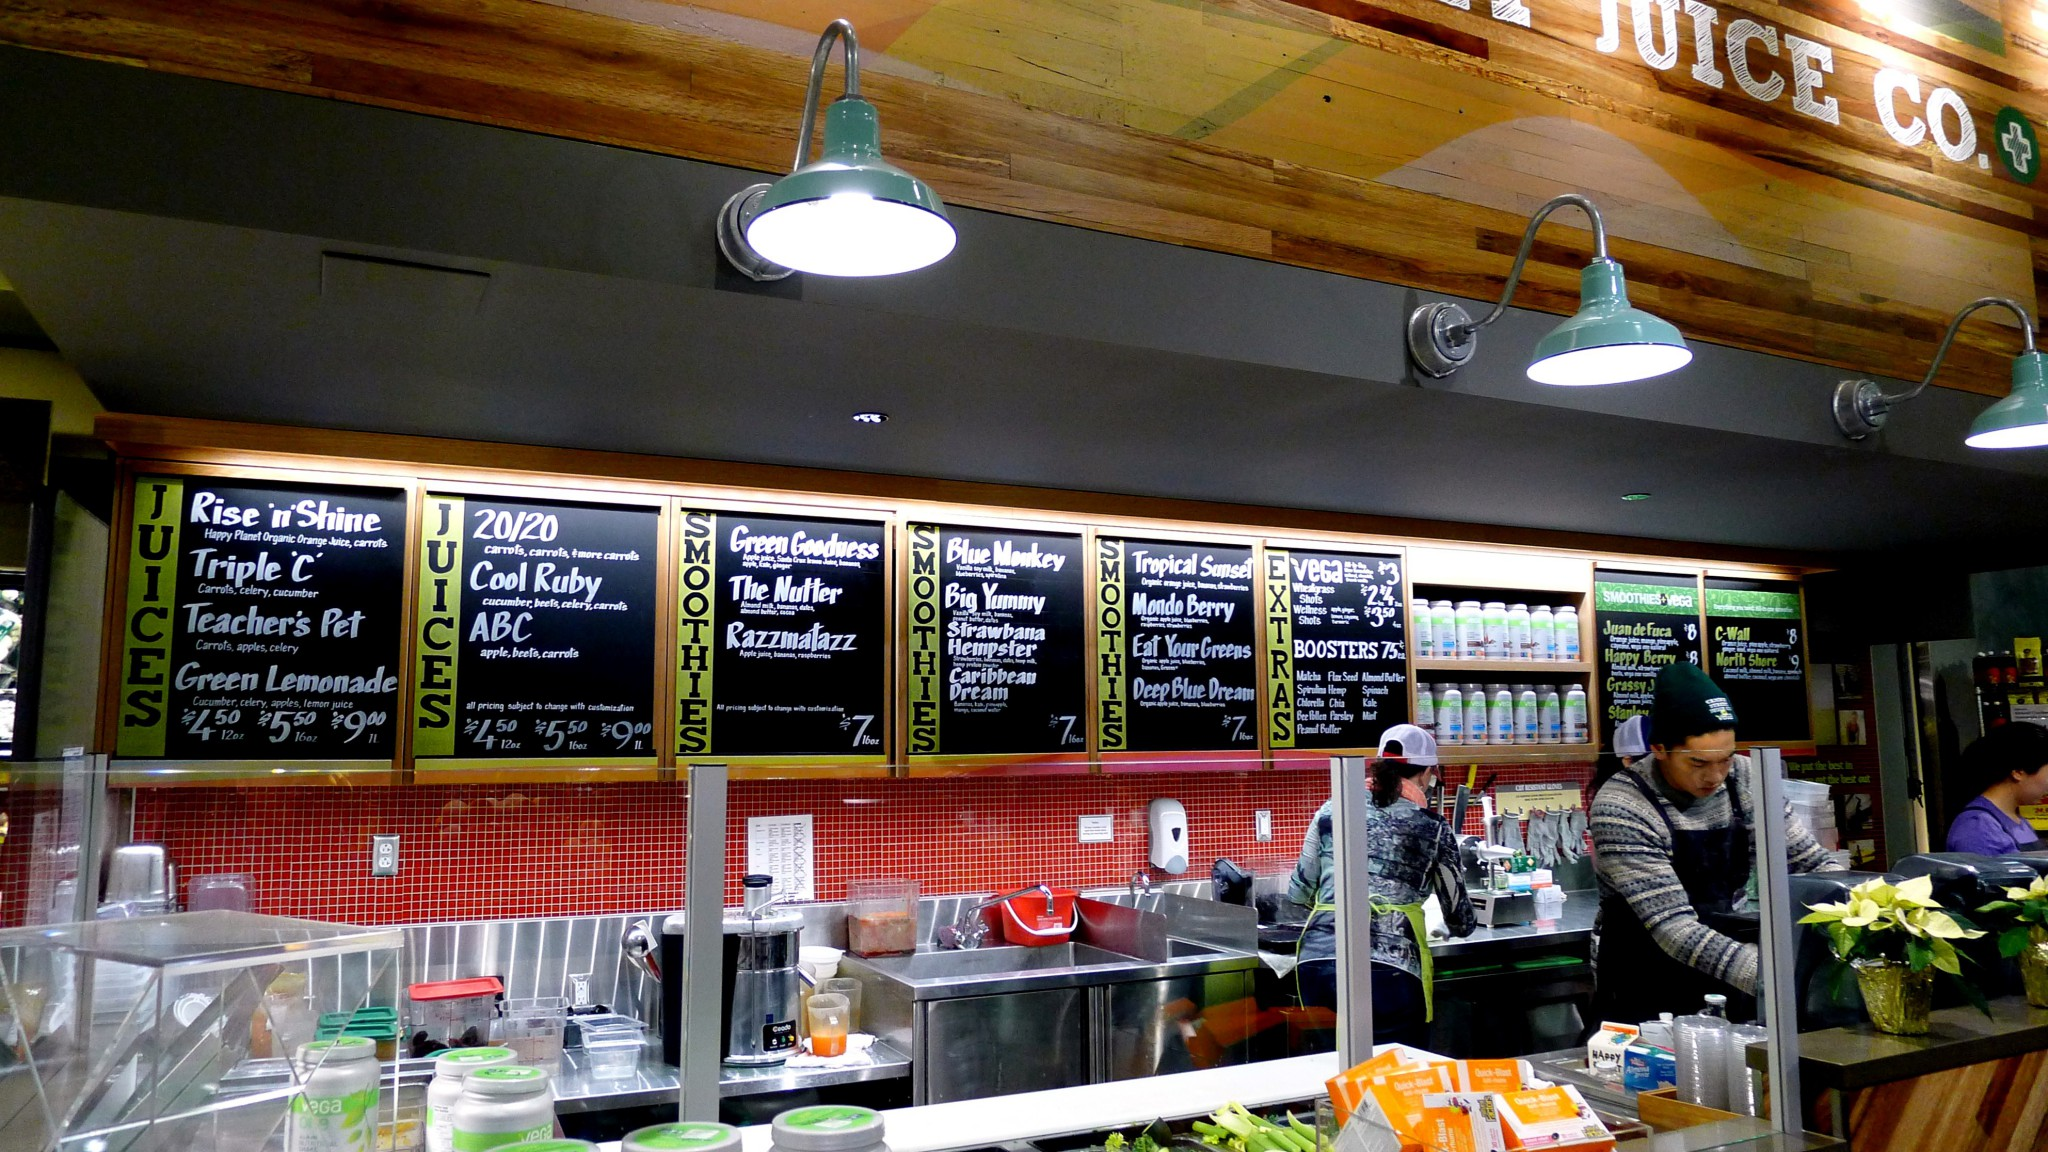 Cambie street juice co at whole foods market vancouver for Whole food juice bar menu